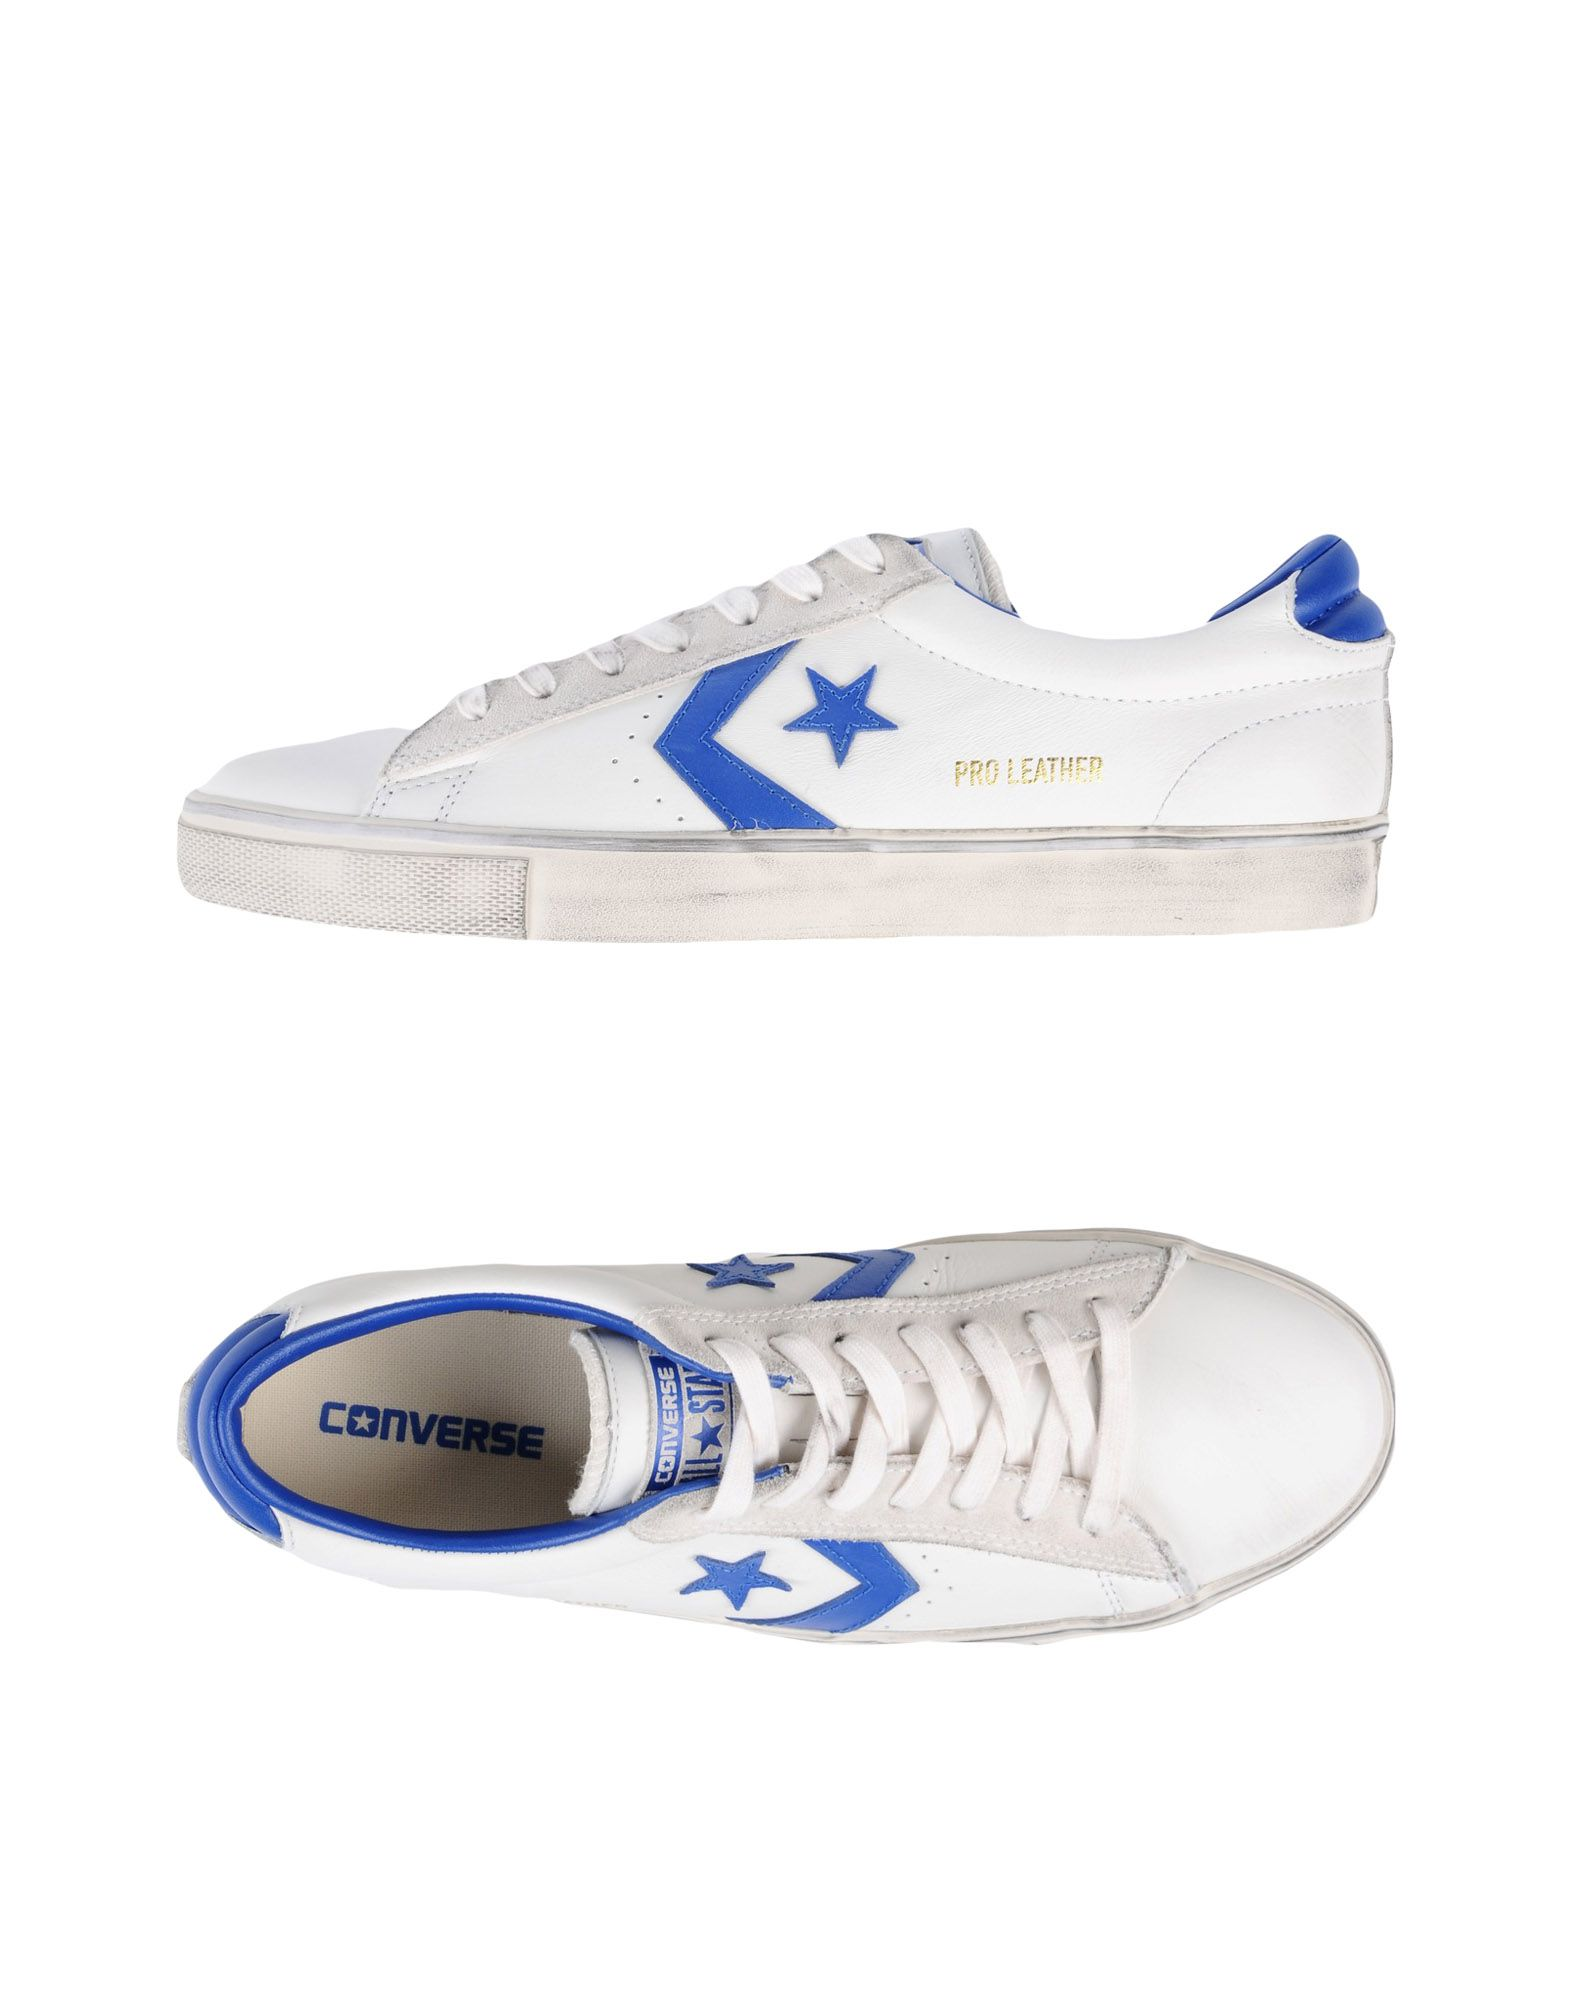 Sneakers Converse All Star Pro Leather Vulc Ox Leather - Homme - Sneakers Converse All Star sur